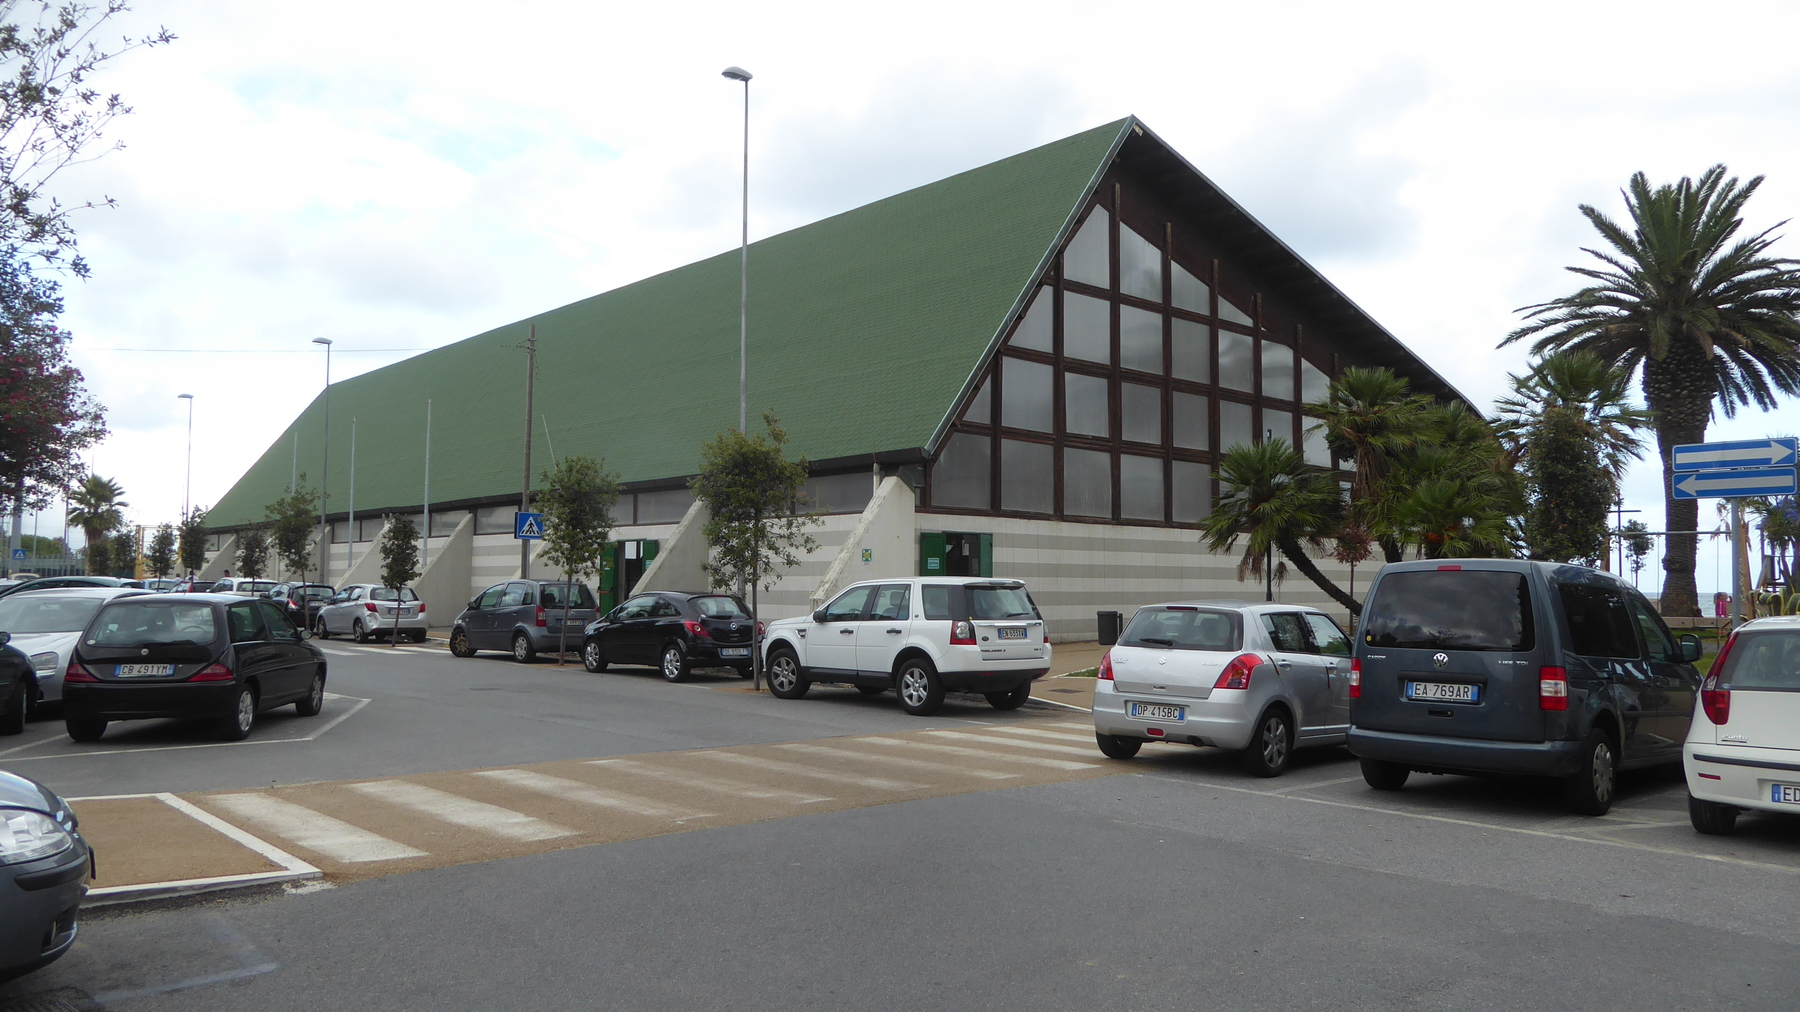 The Savonese sports facility from the outside - street view